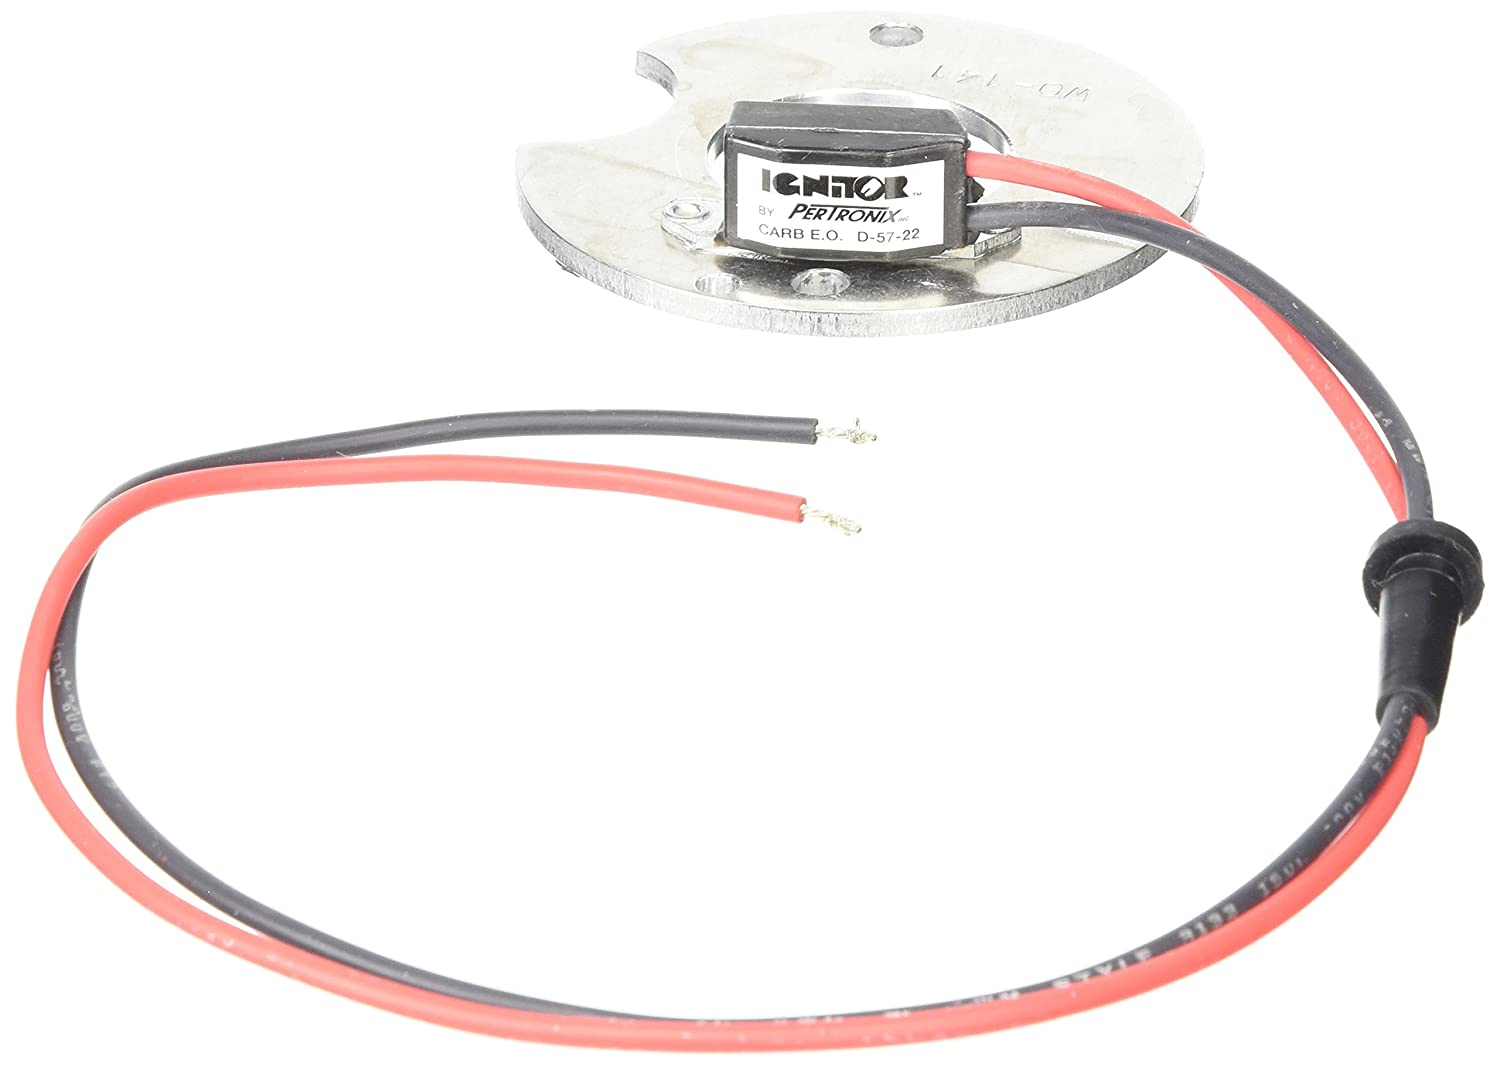 Pertronix Wo 141 Wico 4 Cylinder Ignitor Hot Sale Sugablossomcakes D 57 2 Wiring Diagram